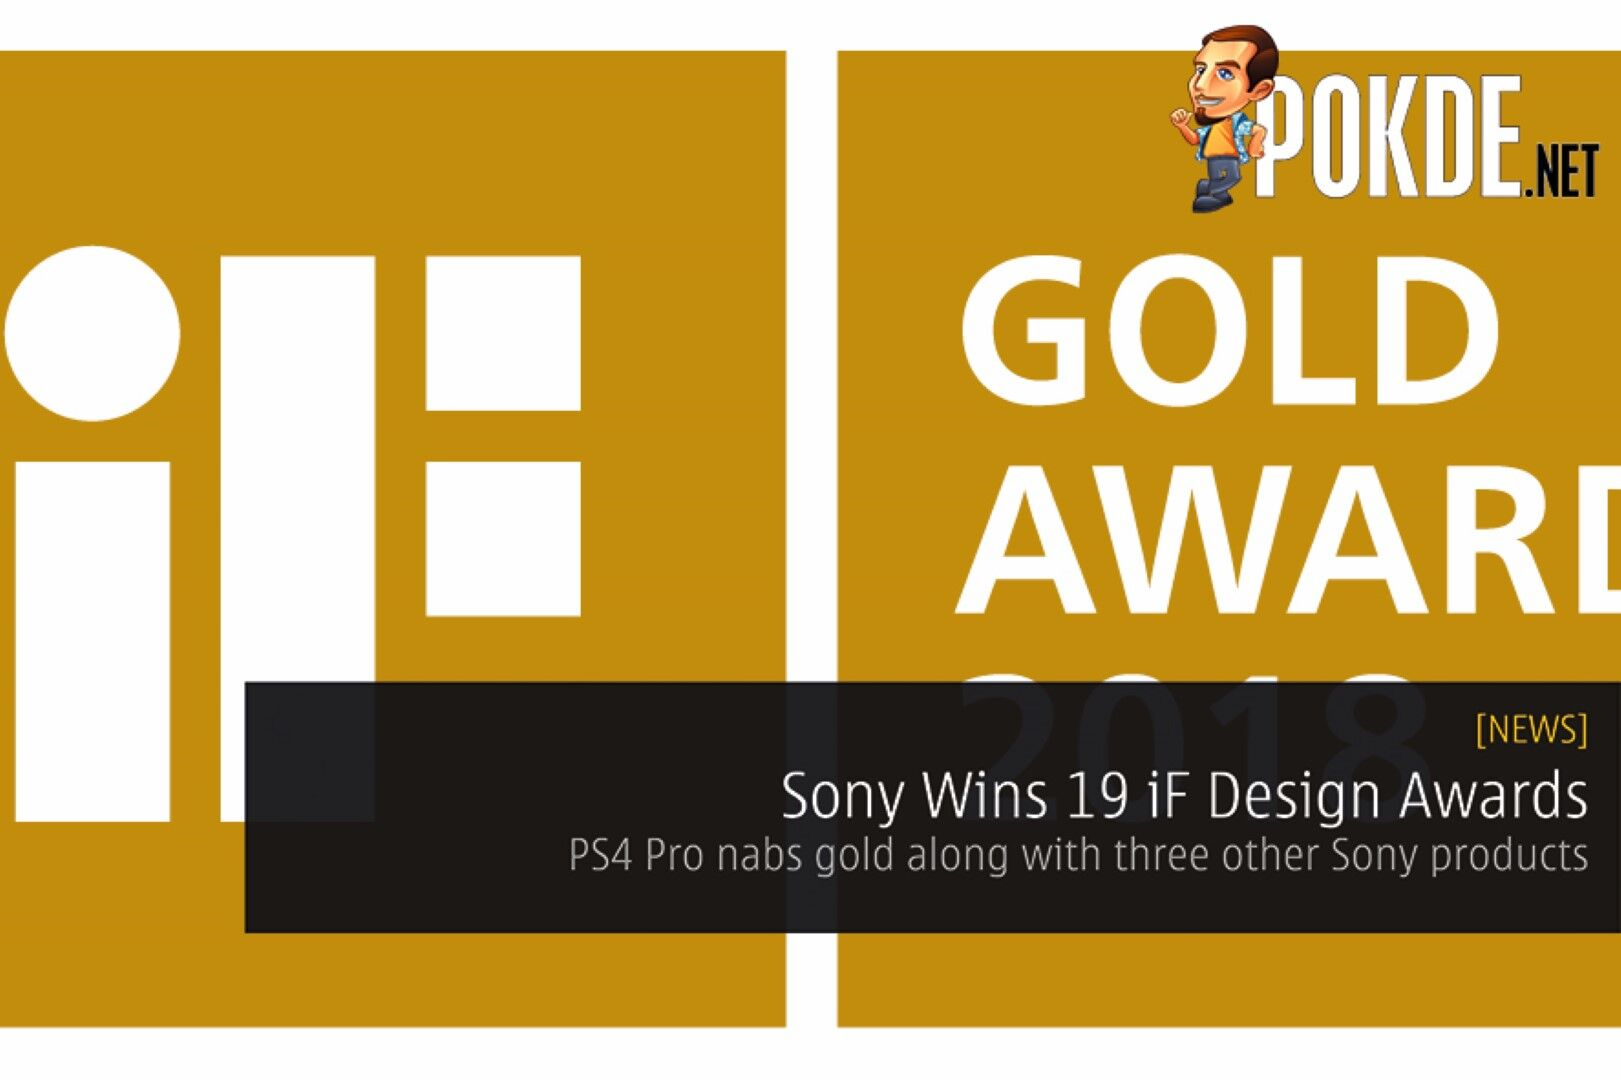 Sony Wins 19 iF Design Awards - PlayStation 4 Pro nabs gold along with three other Sony products 21